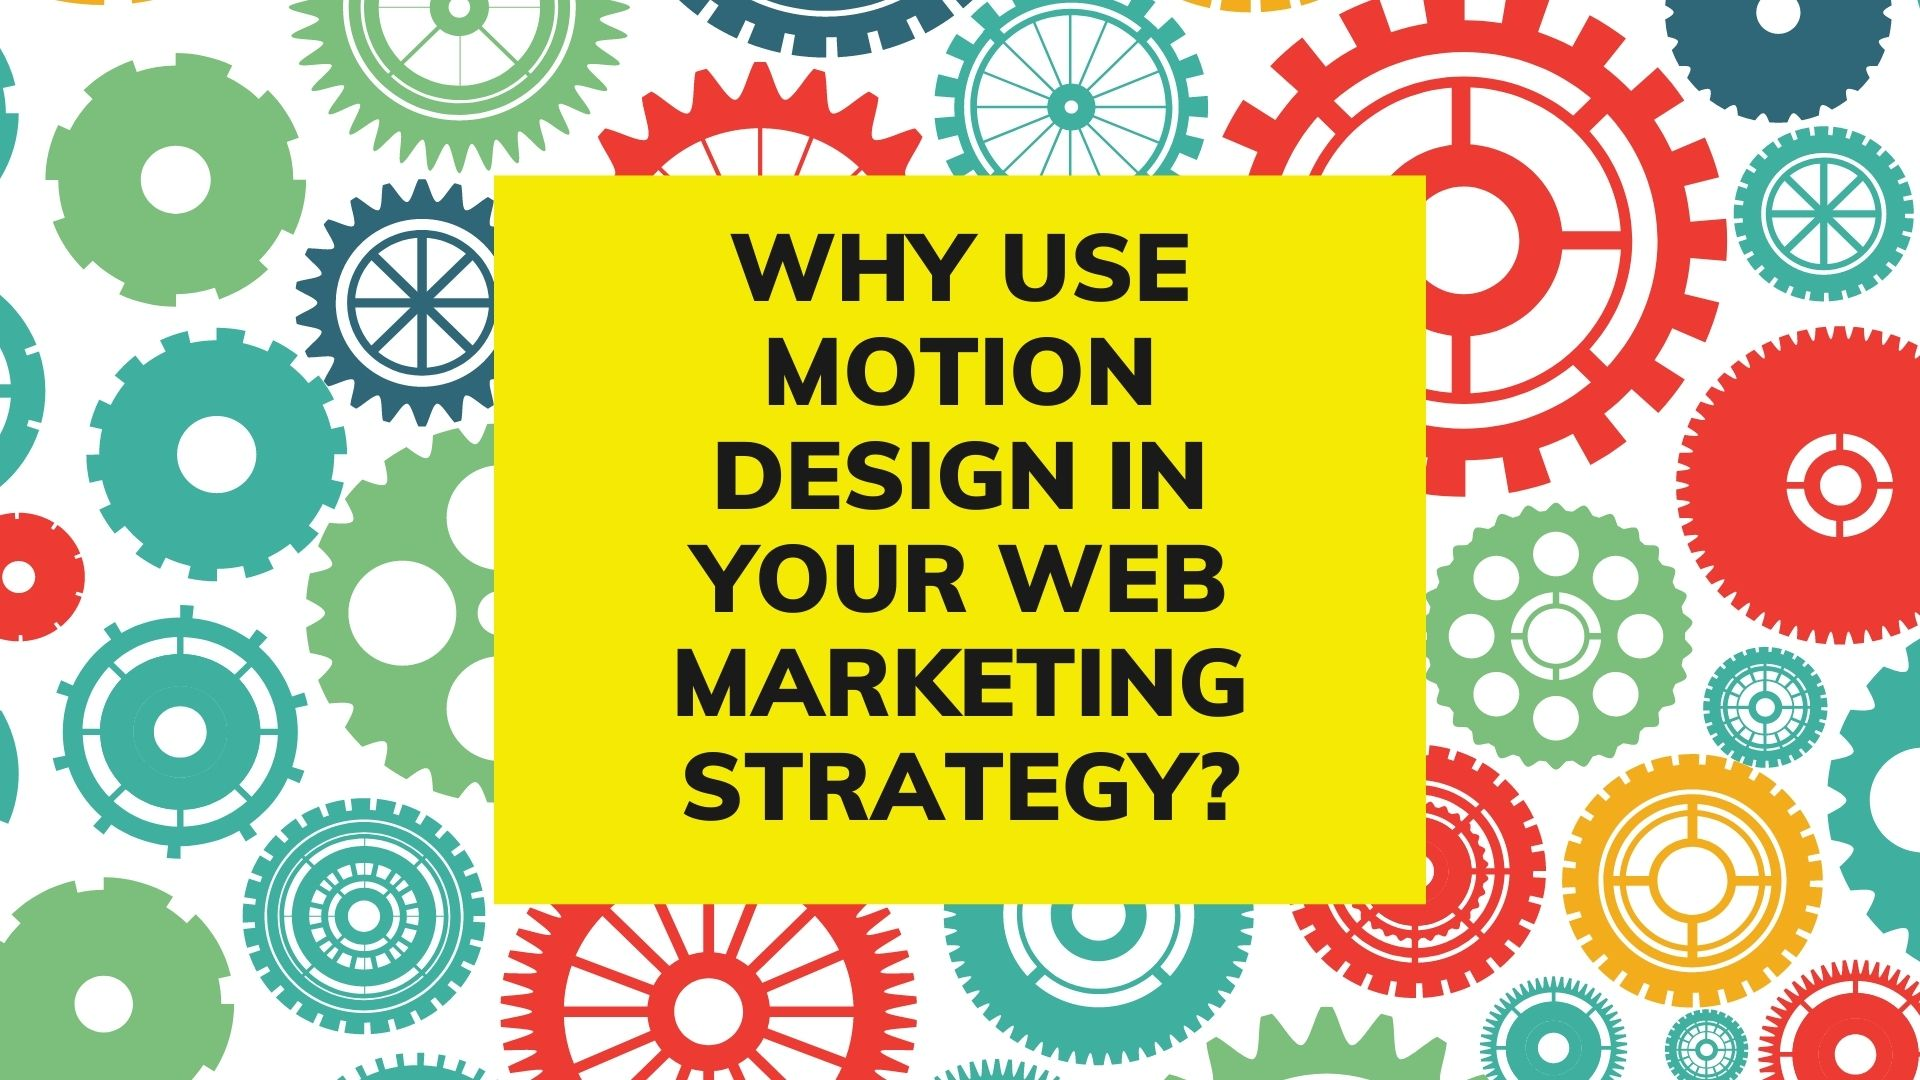 Why use motion design in your web marketing strategy?